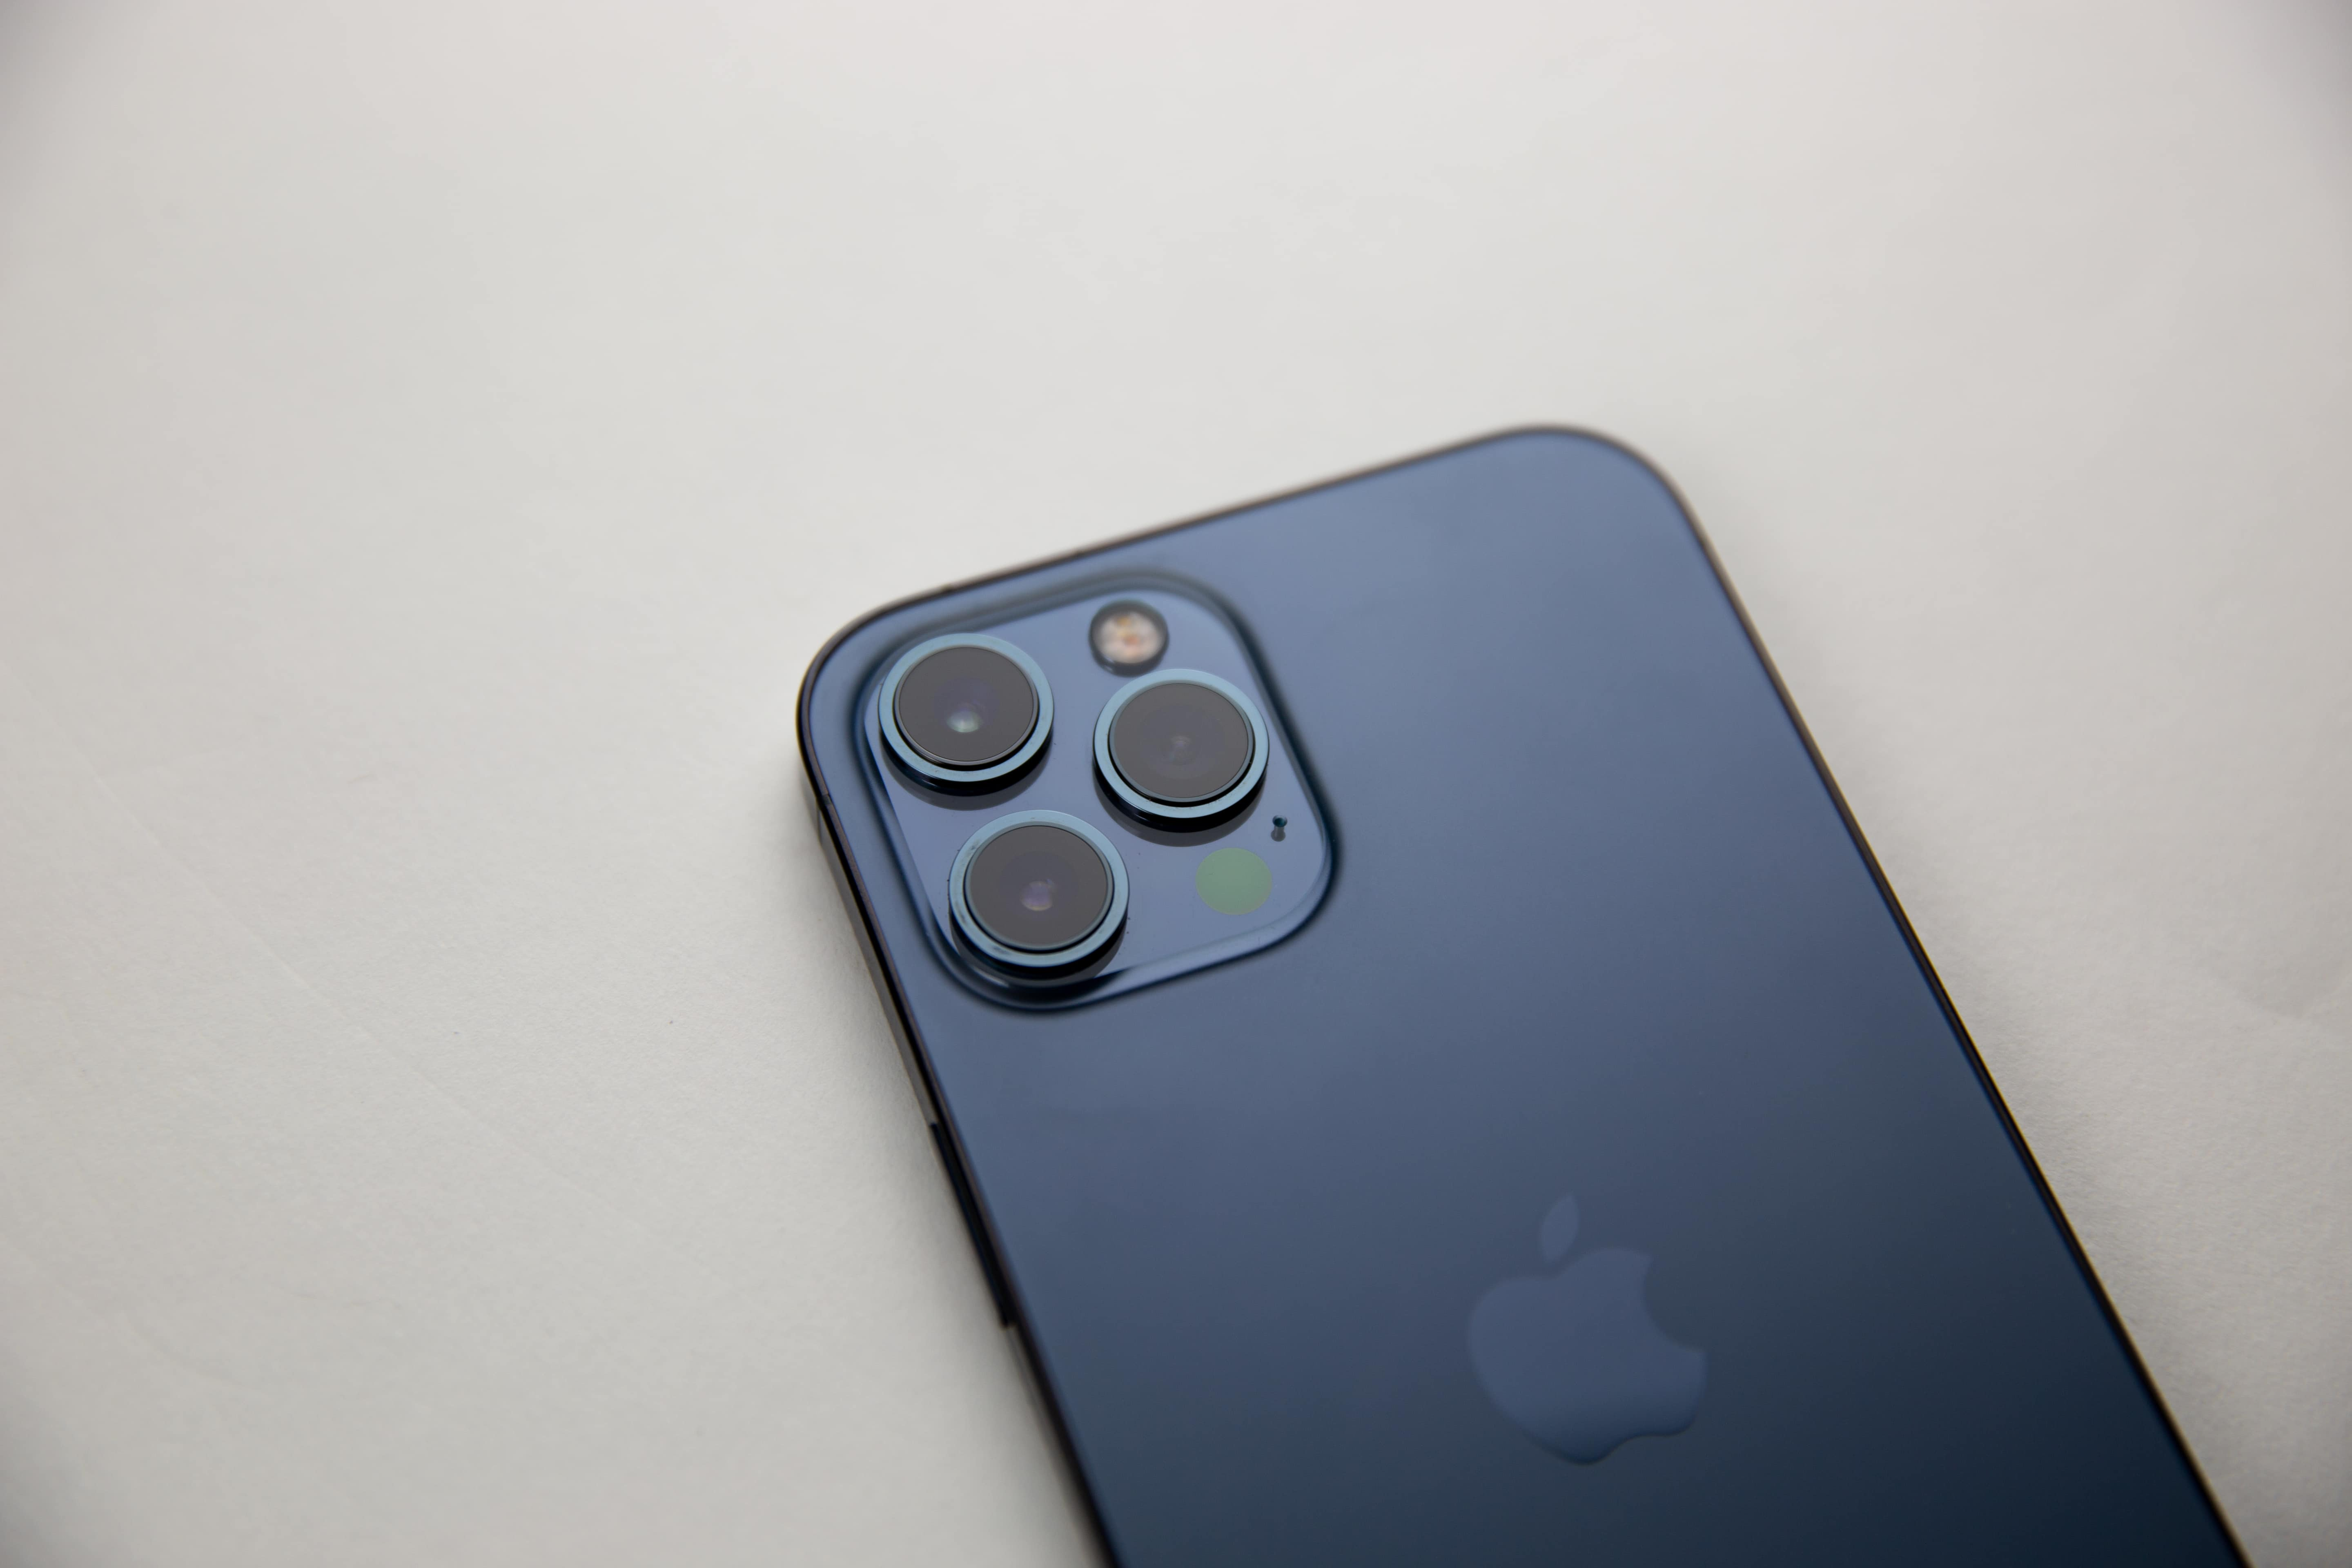 High-end iPhone camera lens won't get a major overhaul in 2021 or 2022